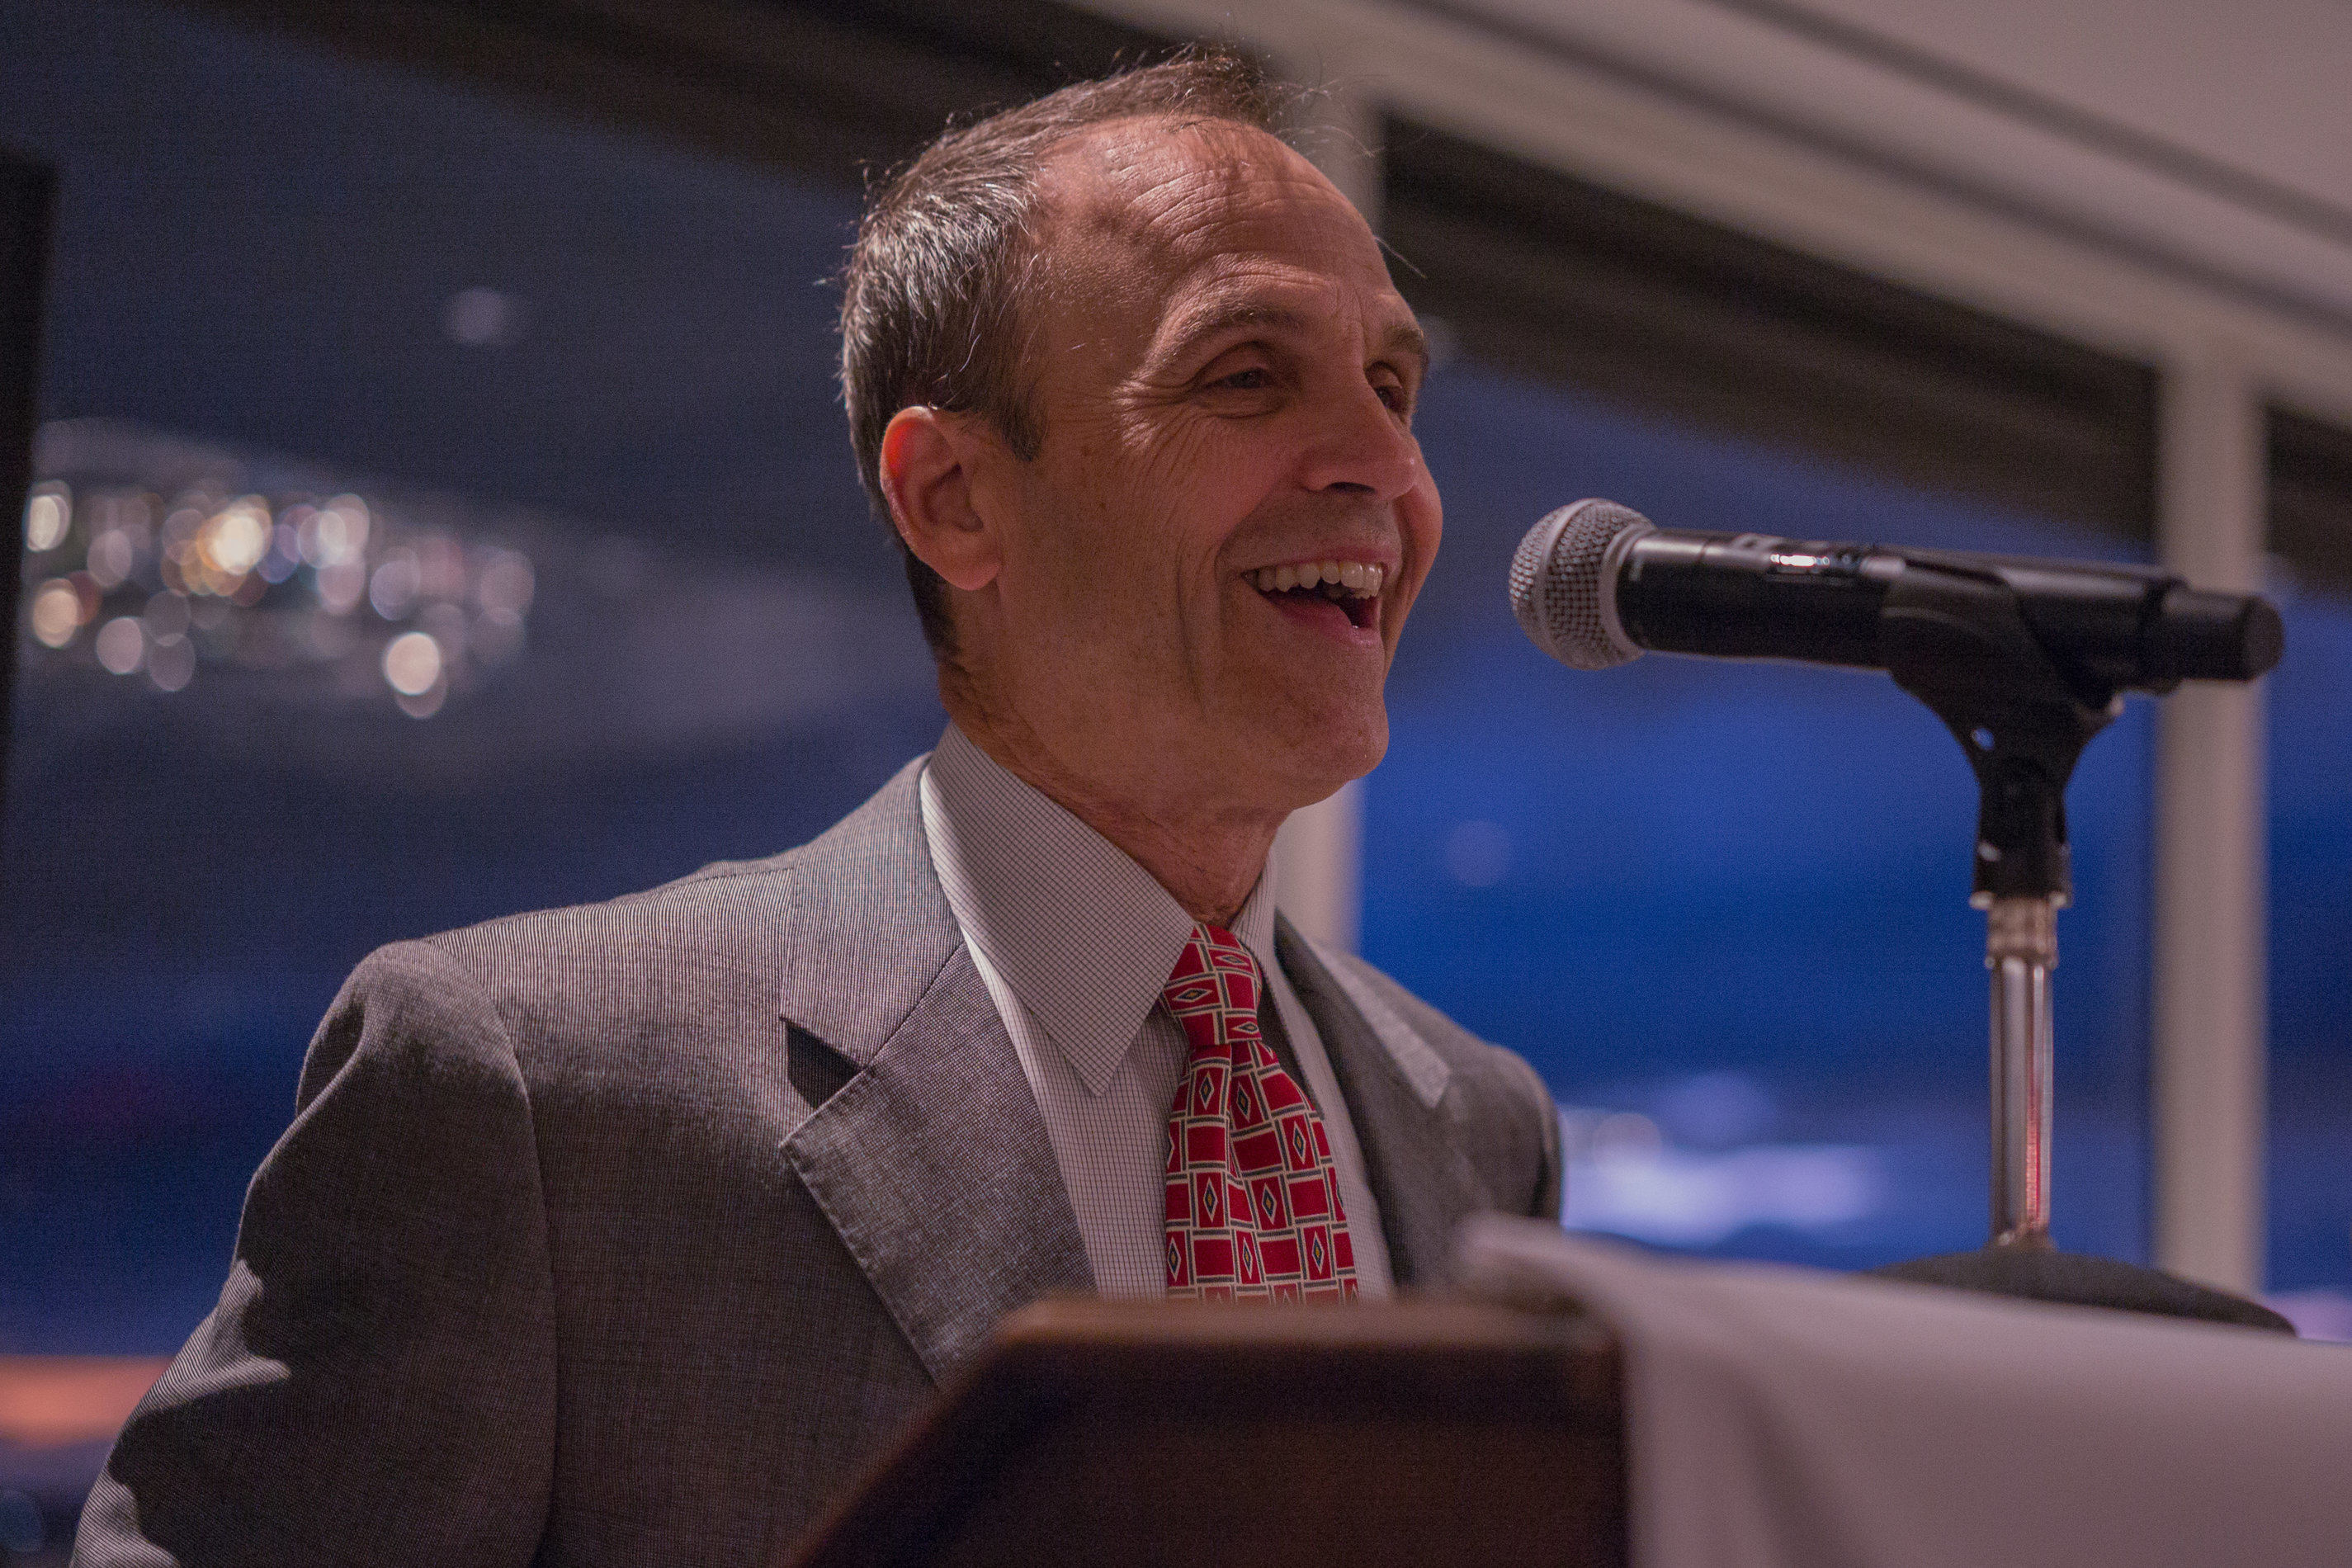 Scott Turow at podium. Photo by Alan Behr.